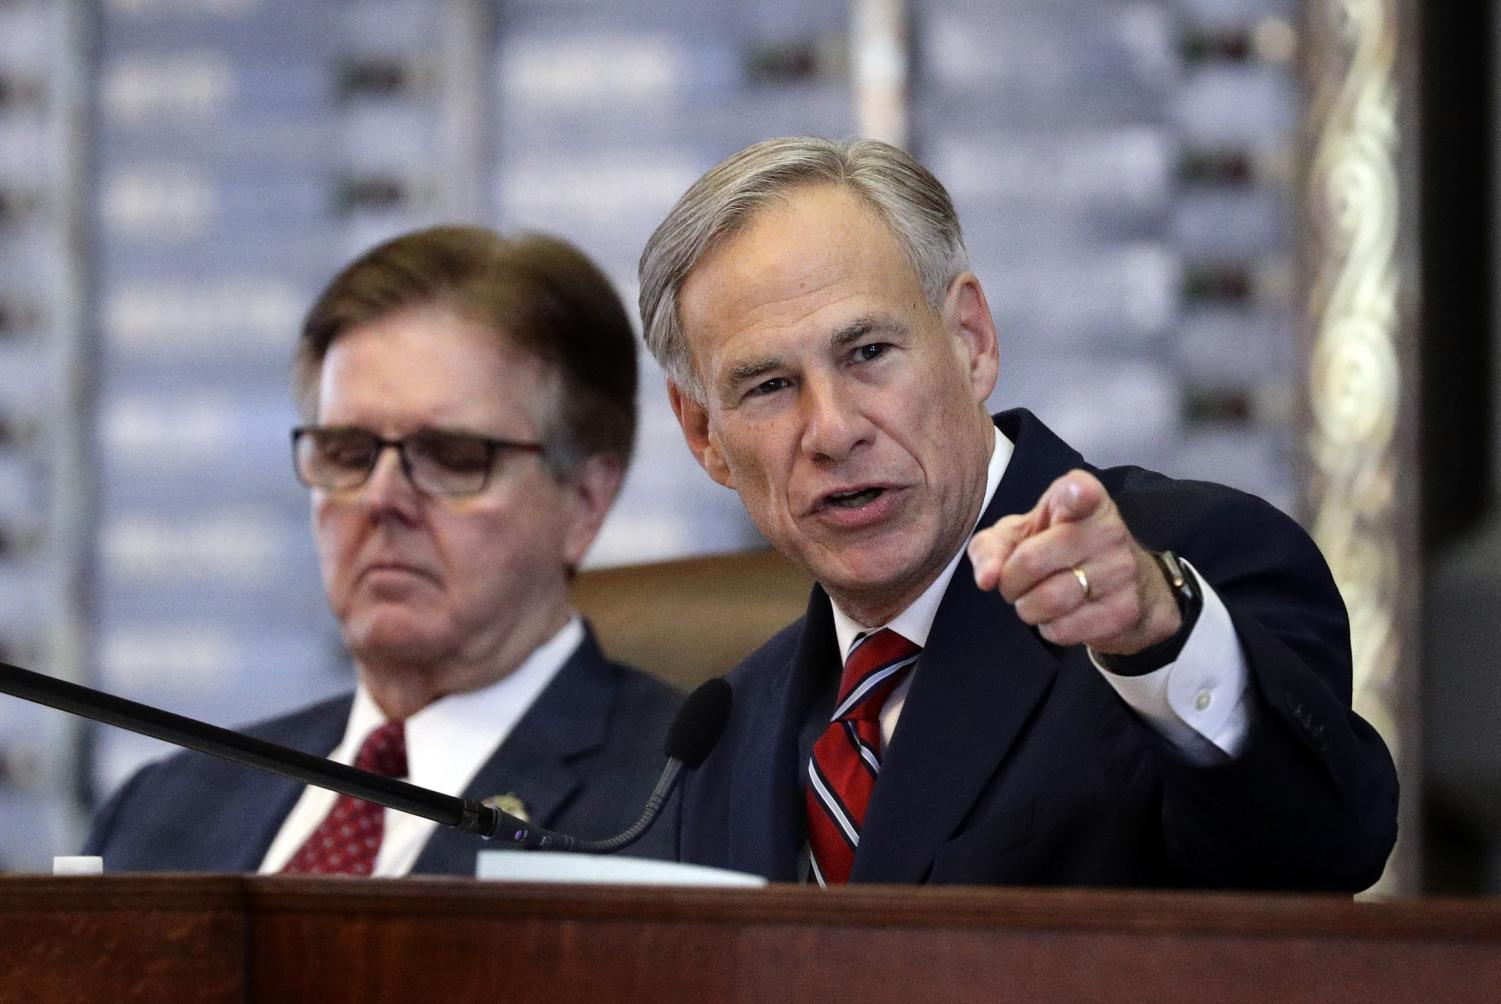 FILE - In this Feb. 5, 2019 file photo, Texas Gov. Greg Abbott, right, gives his State of the State address as Lt. Gov. Dan Patrick, left, listens in the House Chamber in Austin, Texas. Texas' tough stance on marijuana as the drug becomes increasingly legal elsewhere in the U.S. has grounded a bipartisan push in the state to decriminalize minor offenses — a change the Texas GOP platform has come around to endorsing, but not Republican Gov. Greg Abbott.